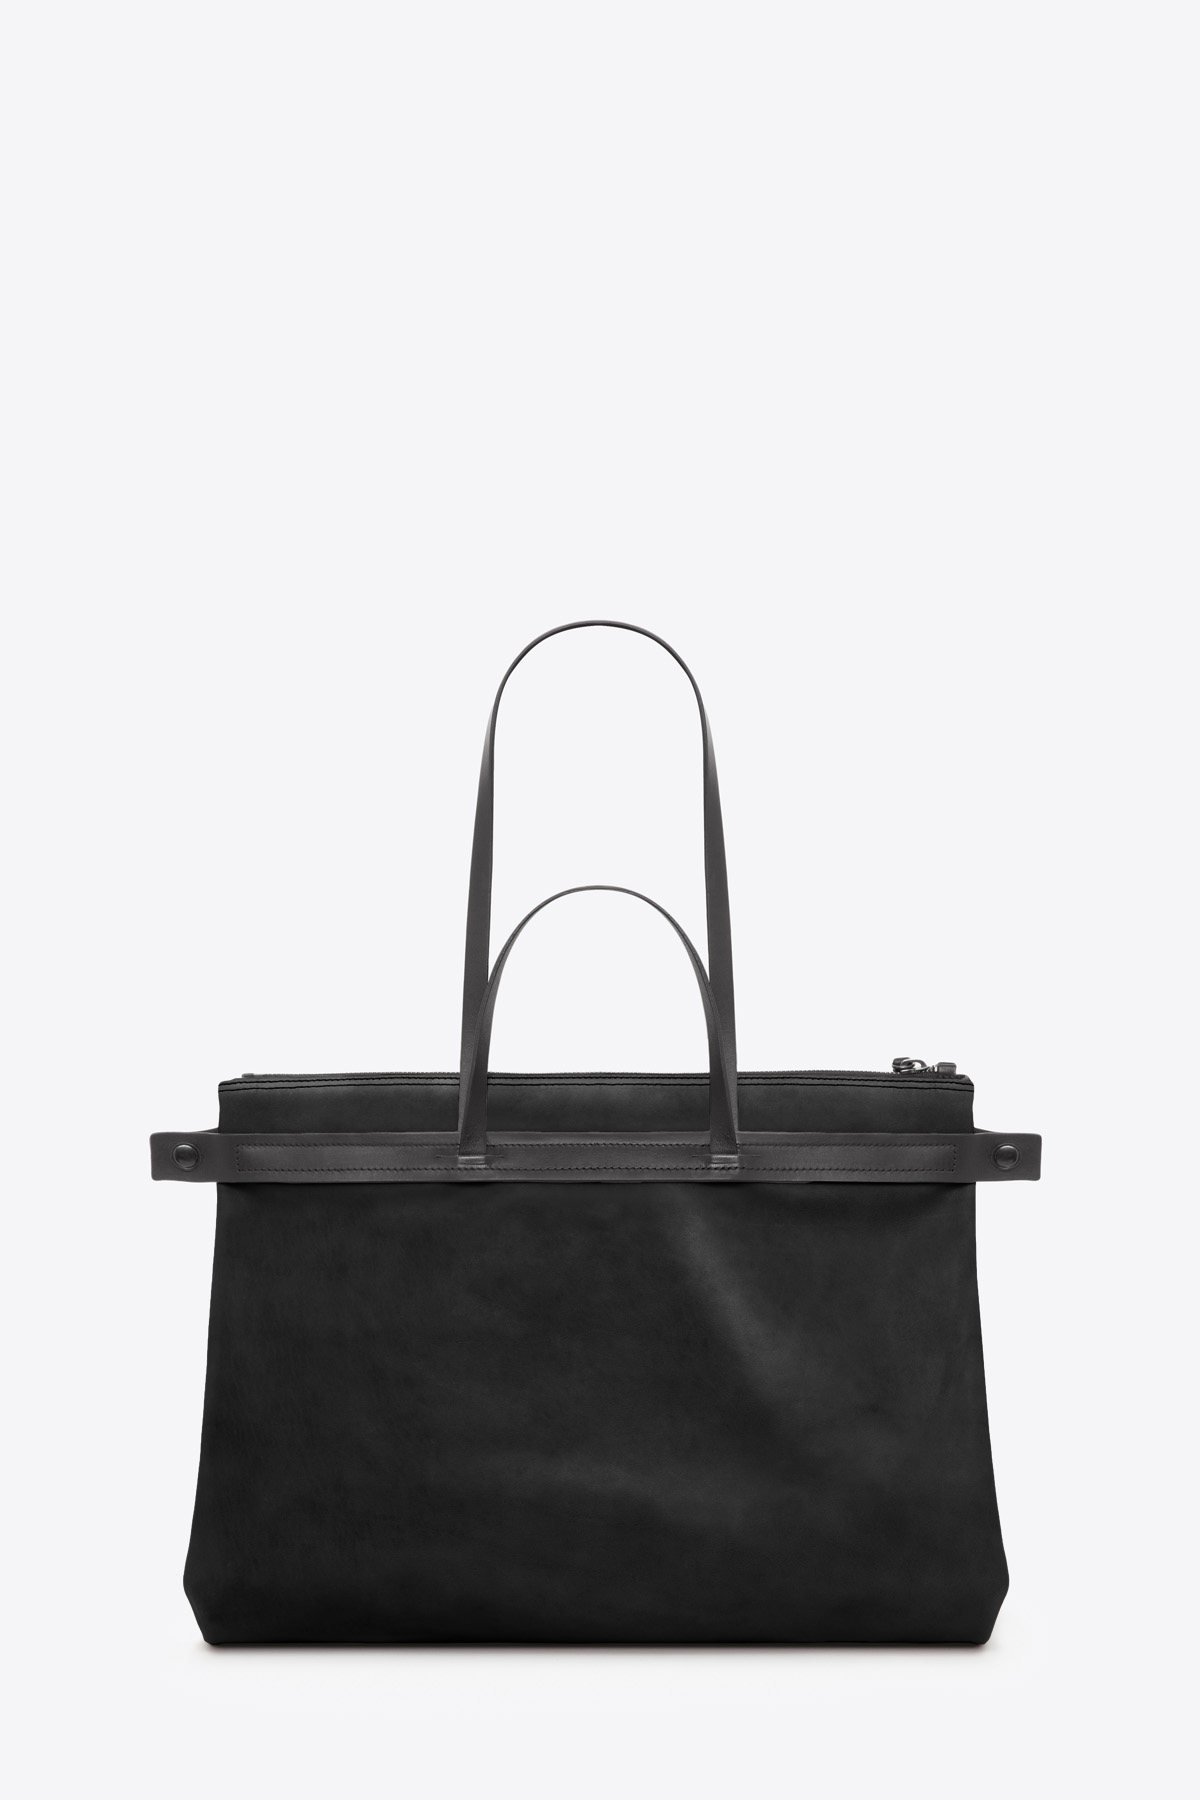 dclr007l-tote-a1-black-back